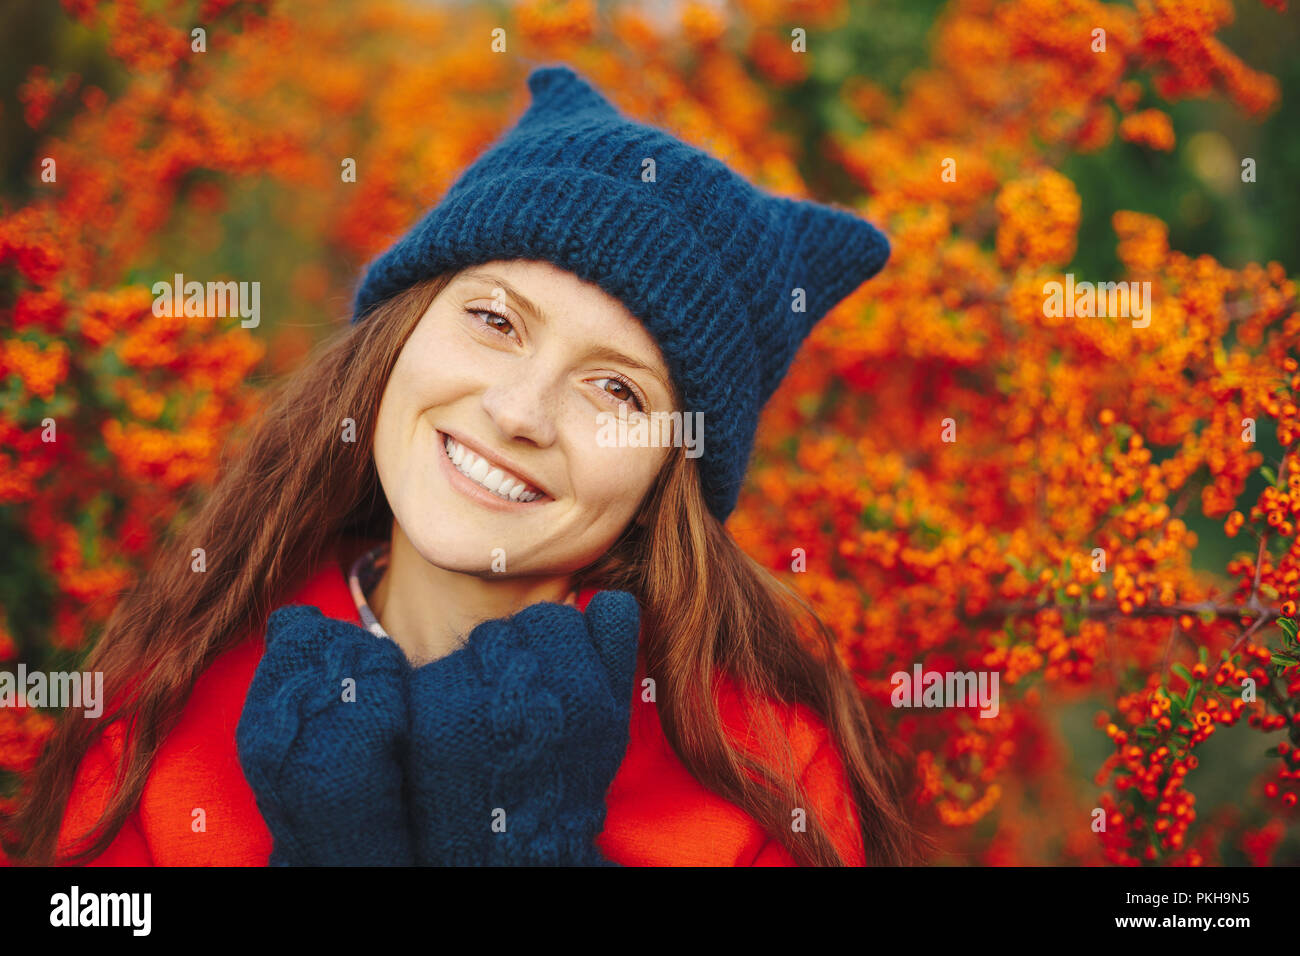 87c09599163 Outdoor close up portrait of young beautiful happy smiling hipster girl  posing on street